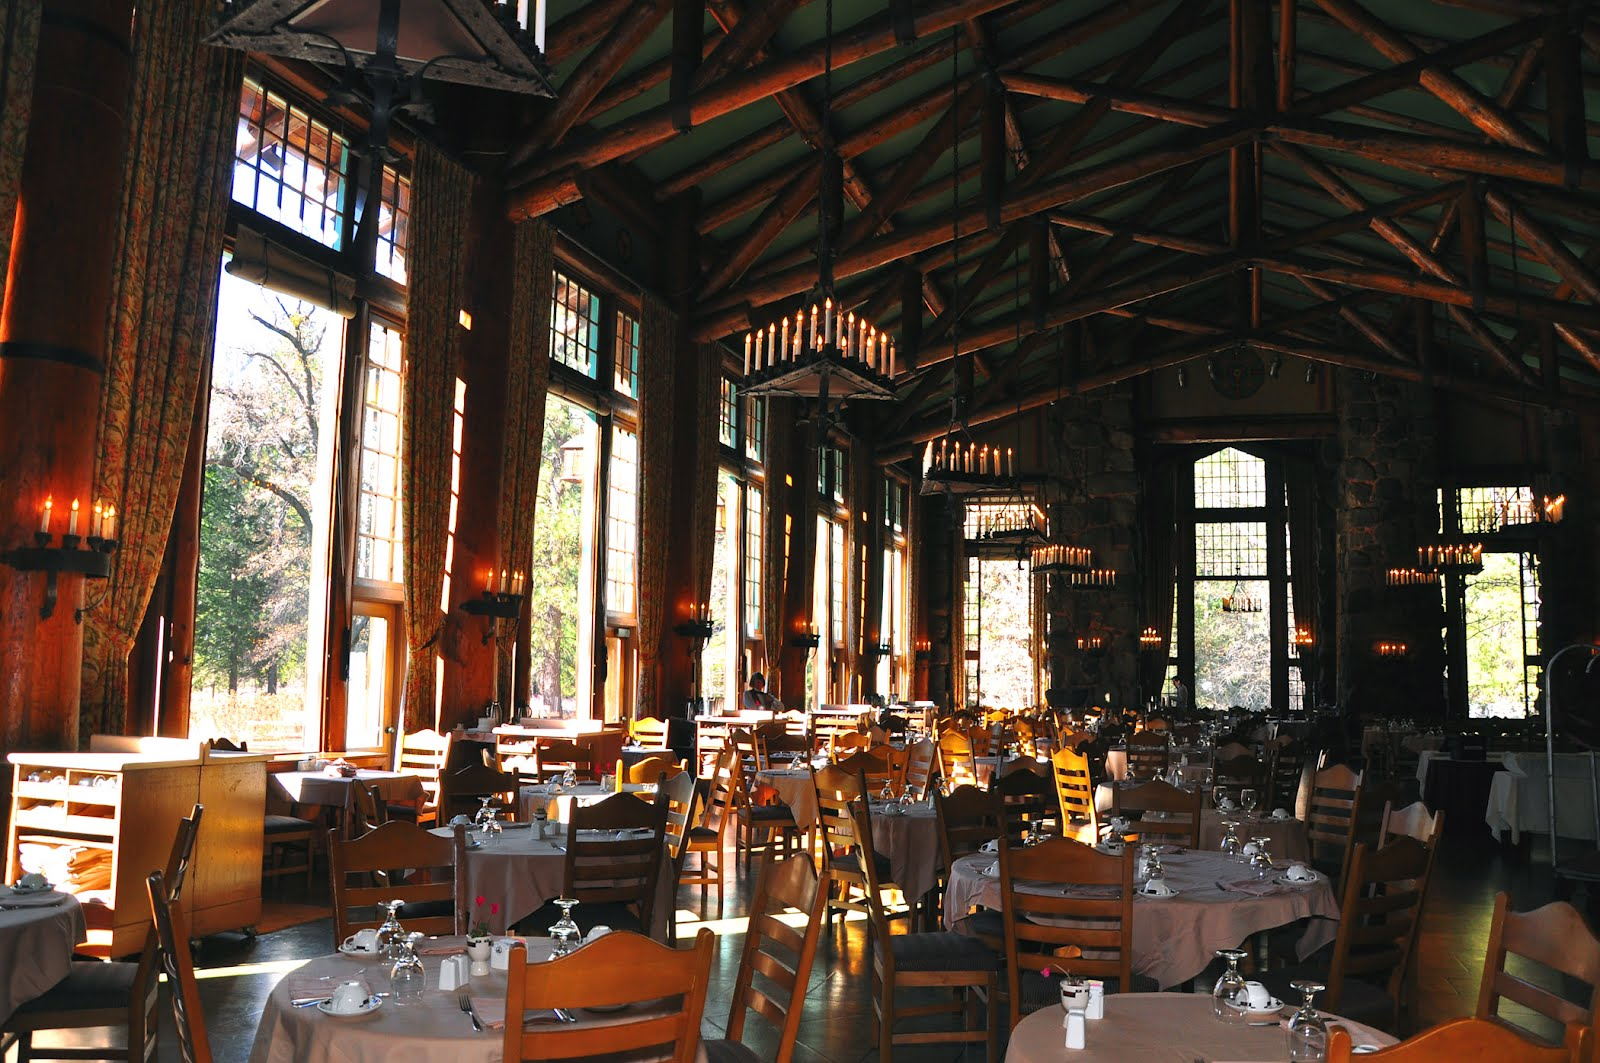 The Ahwahnee Hotel Dining Room The Softer Side Of Yosemite Chefs' Holidays At The Ahwahnee  Art